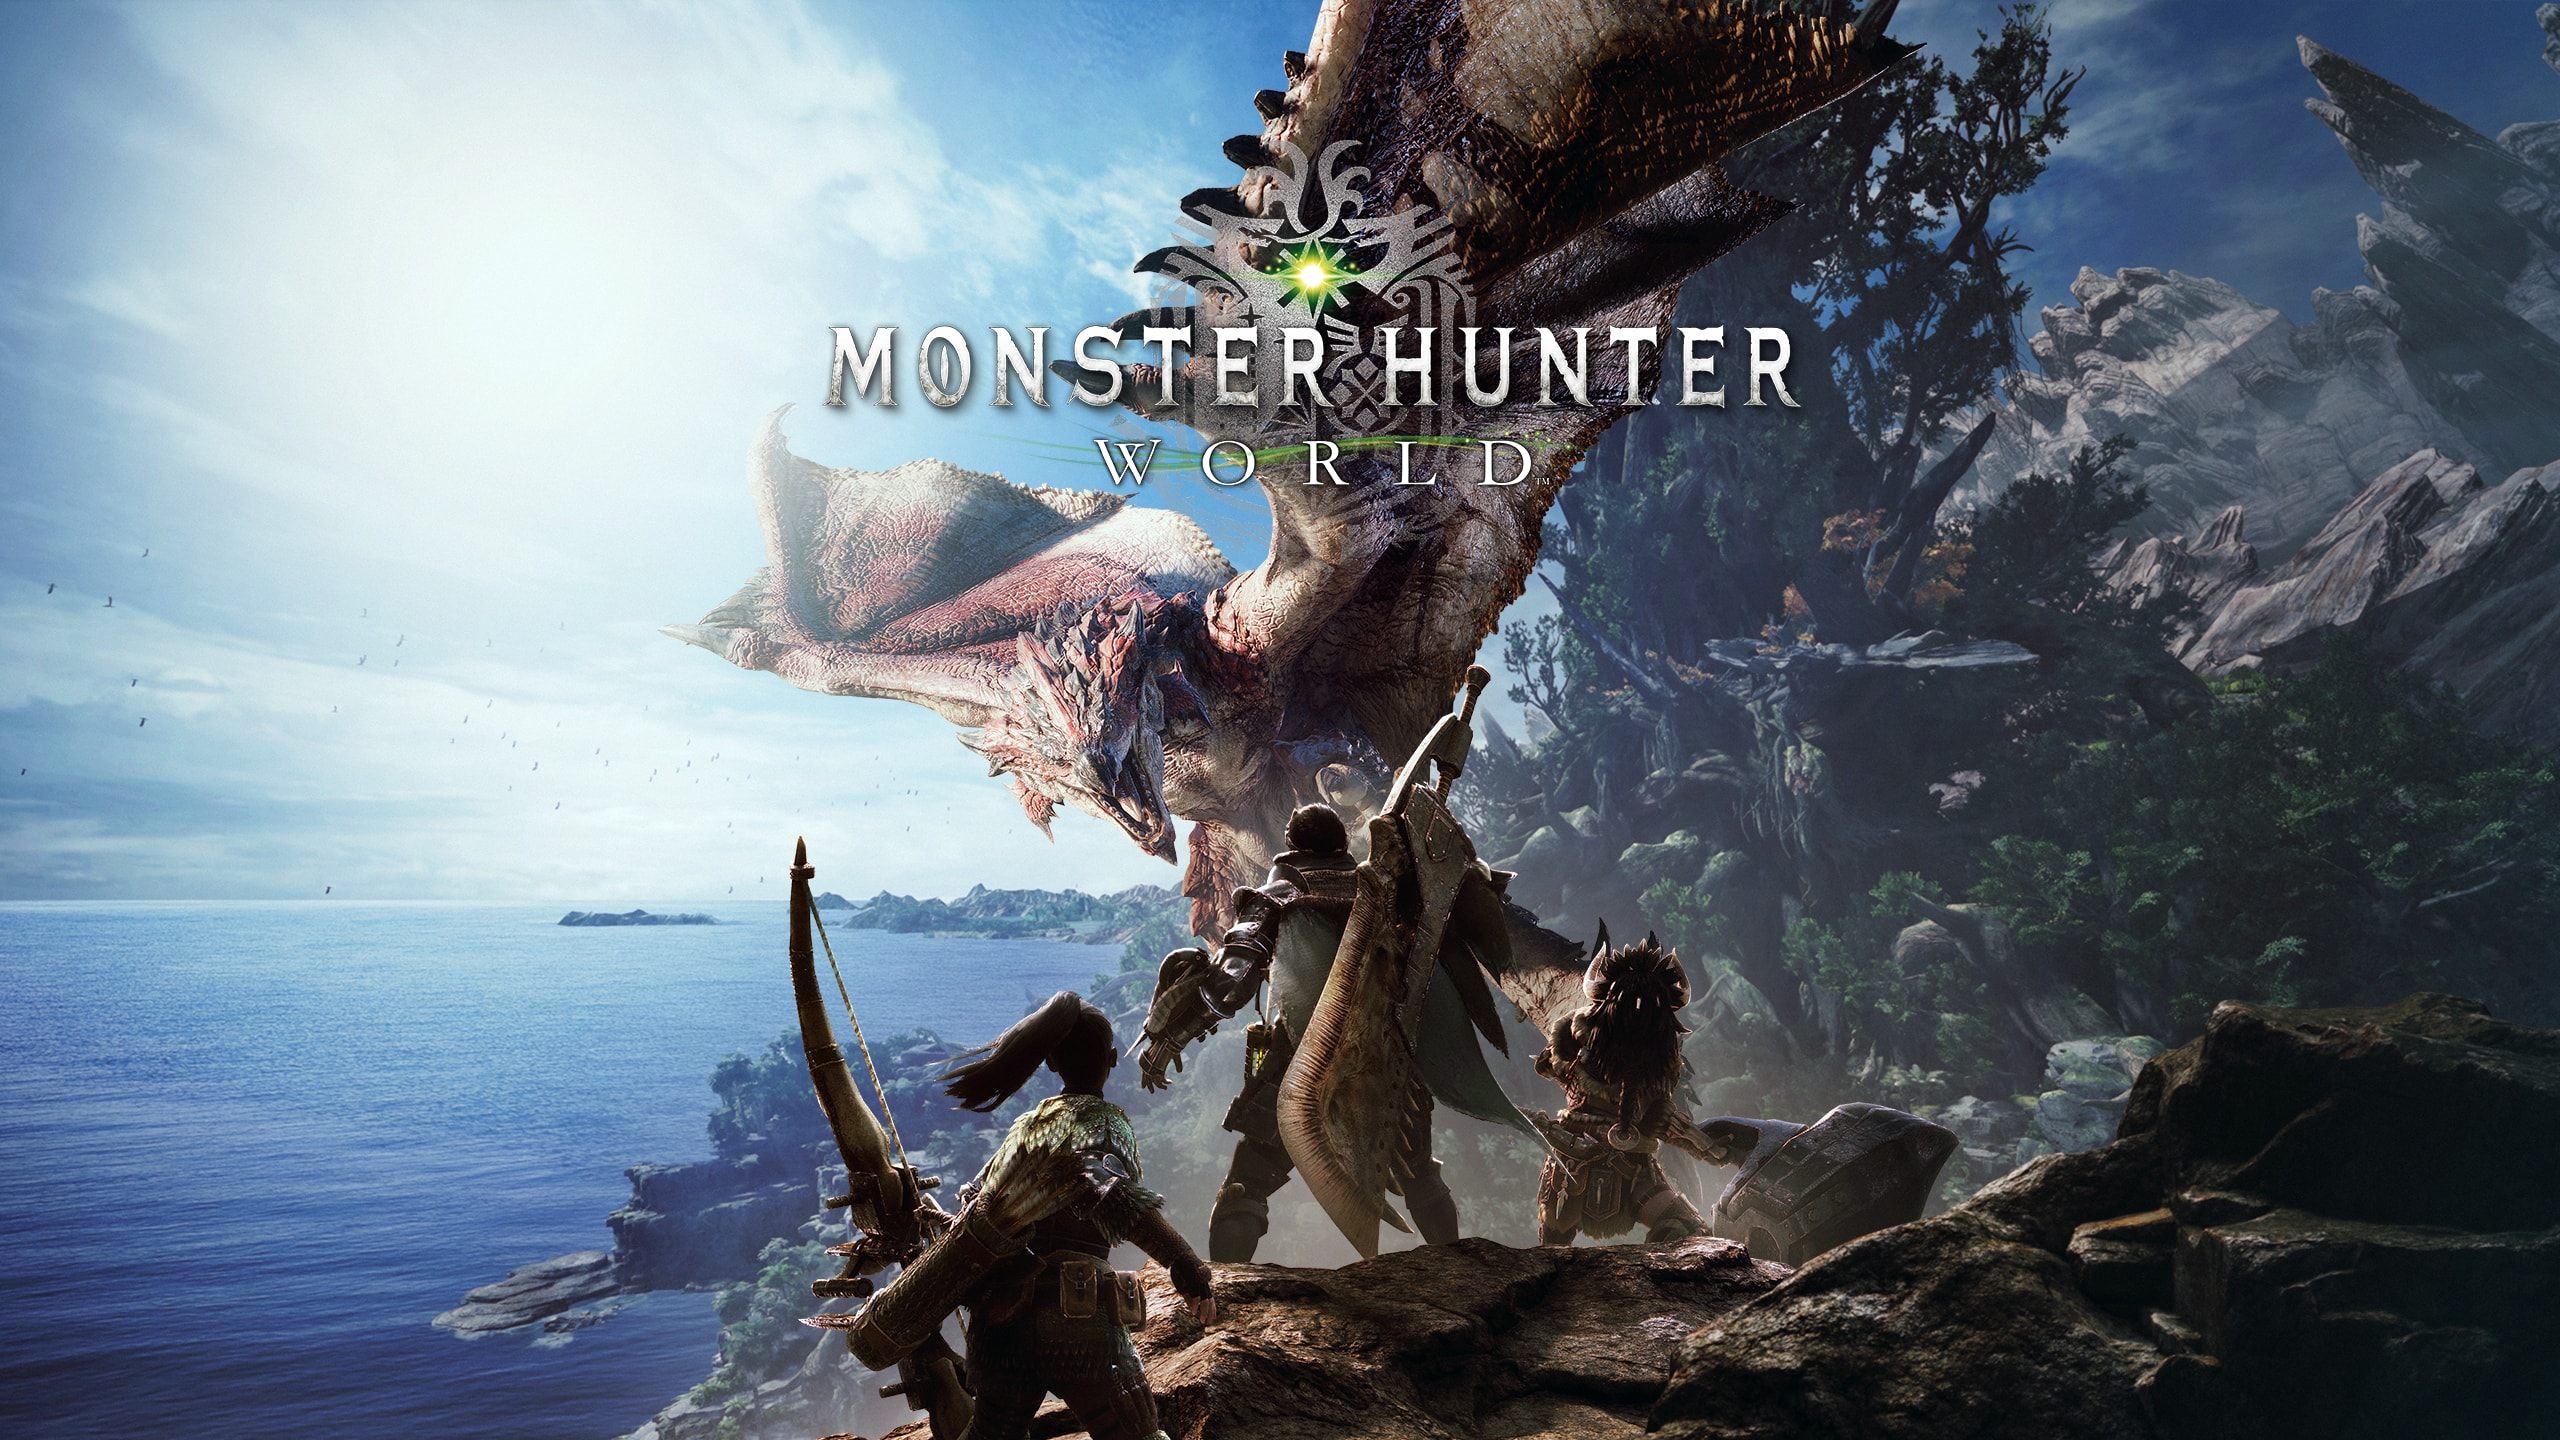 Monster Hunter World Is Free To Play On Ps4 For A Short Period Of Time